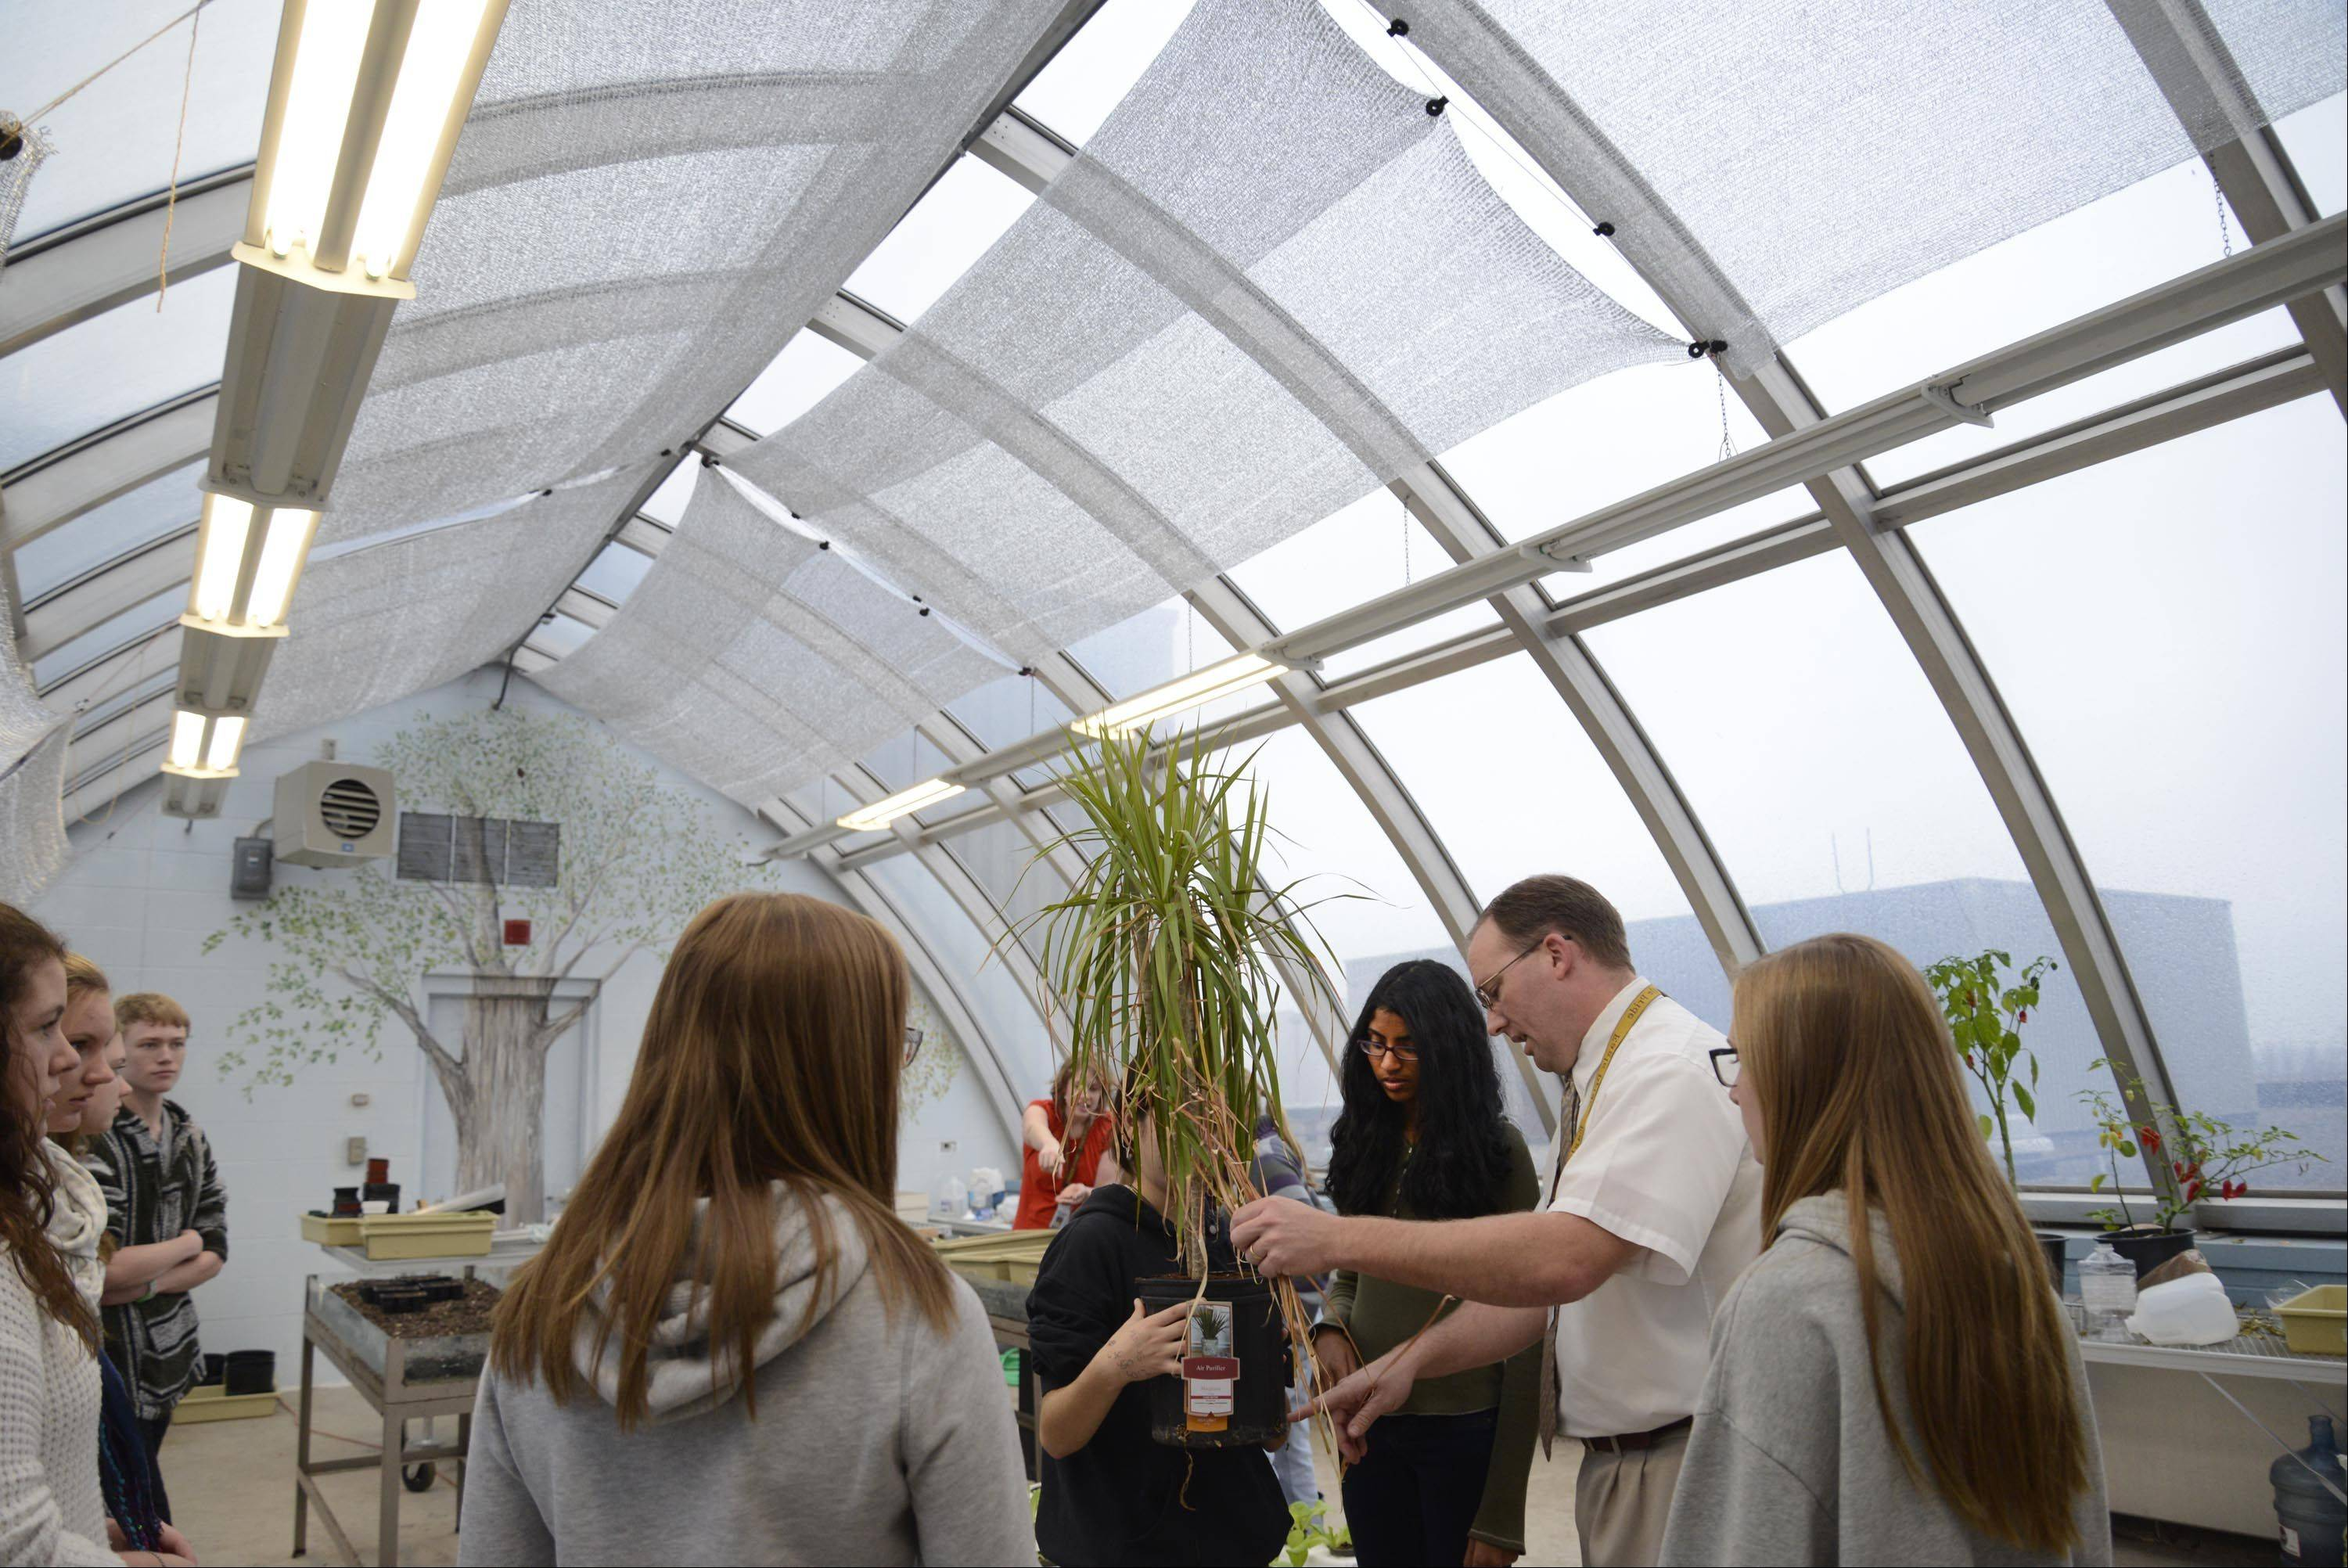 Terry Stroh, head of the science department at Jacobs High School, works with the Green Eagles club inside the greenhouse they renovated on the roof of the Algonquin school. Stroh and the club cleaned the old, unused greenhouse and are now growing food in it for local food pantries.